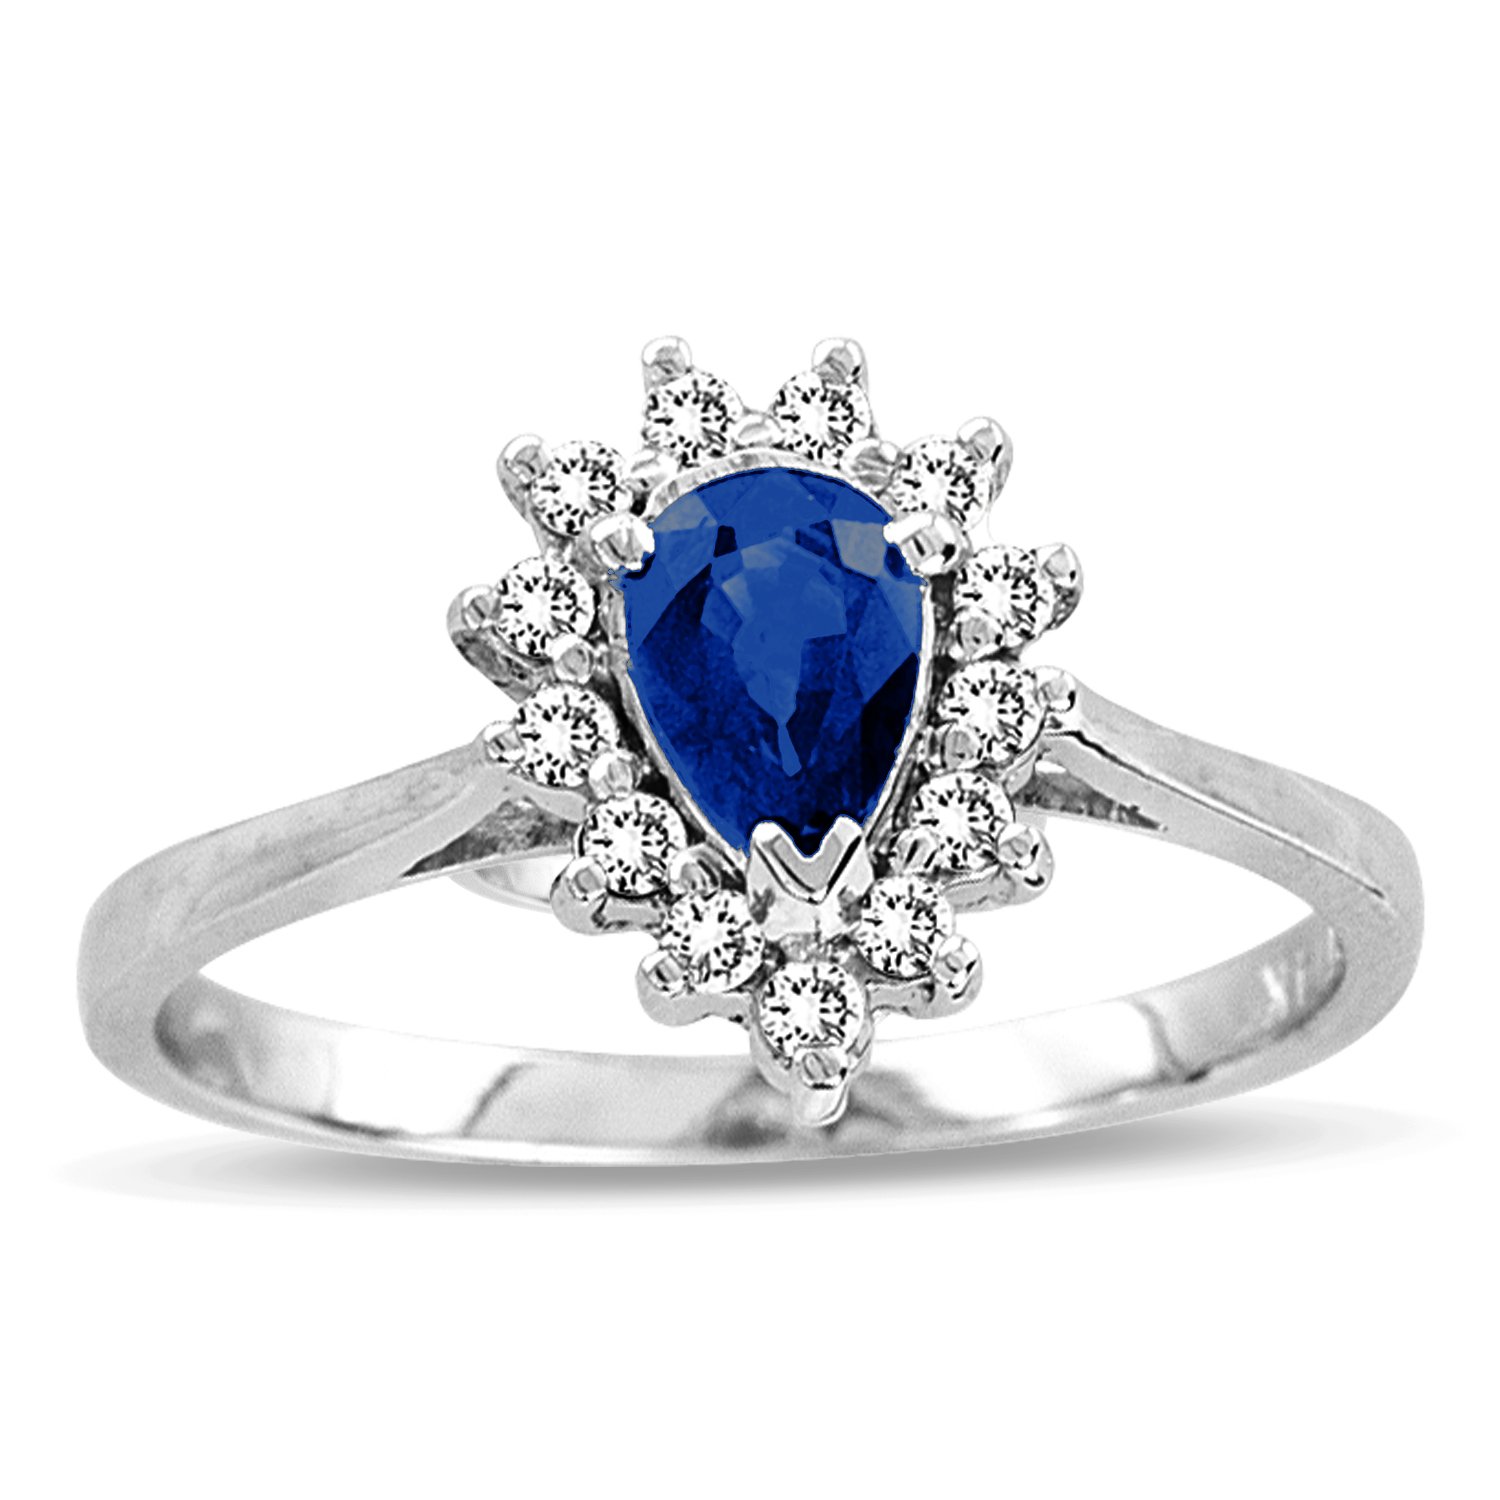 0.69ct tw Pear Shaped Sapphire and Diamond Ring in 14k Gold